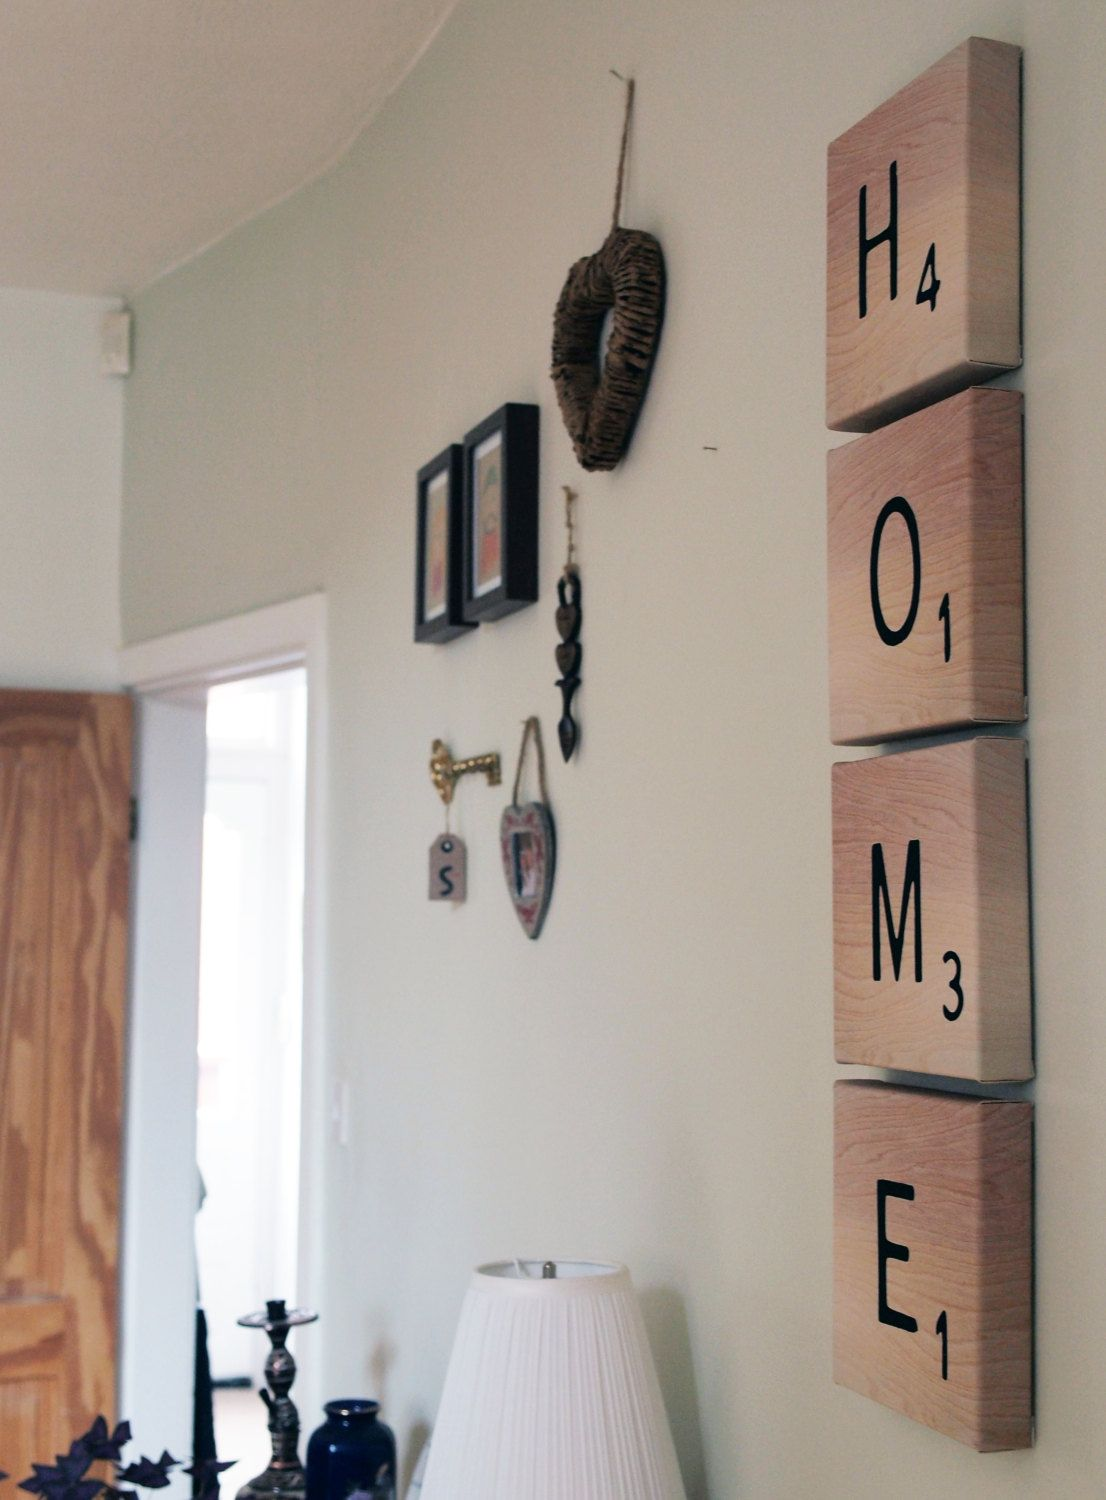 Scrabble Letter Wall Decor Scrabble Letter Tile Canvas Could Use This For A Kids Room And